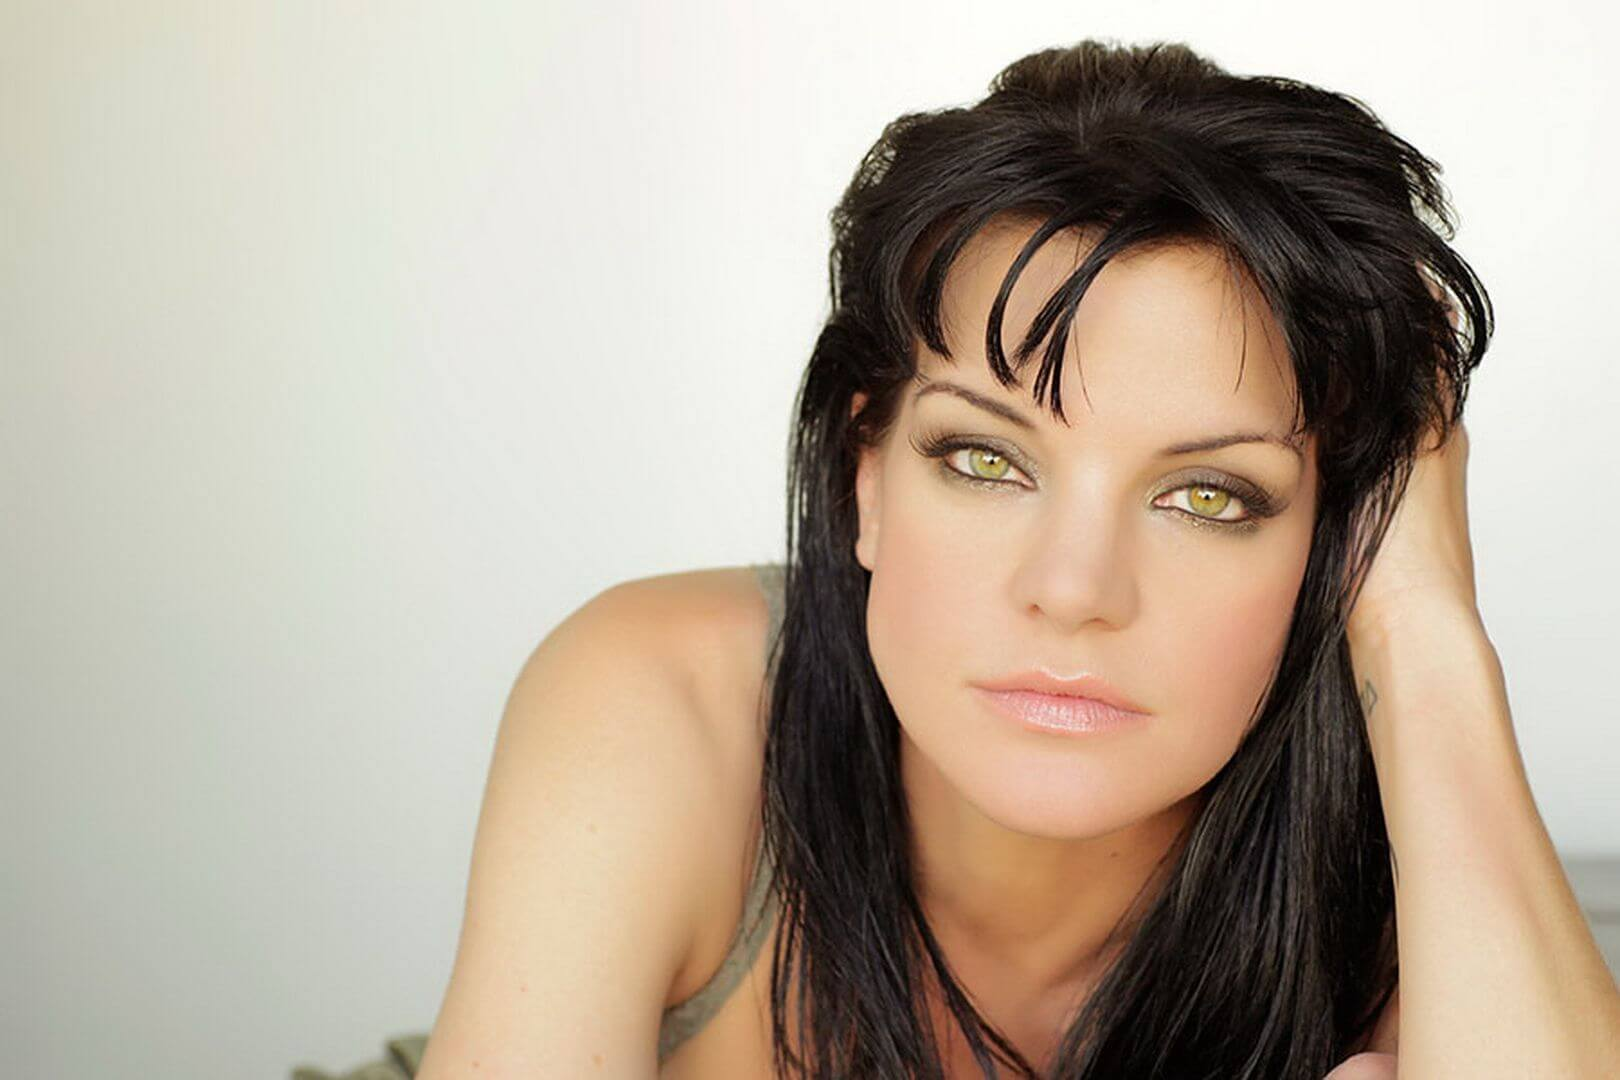 pauley perrette sexy eyes